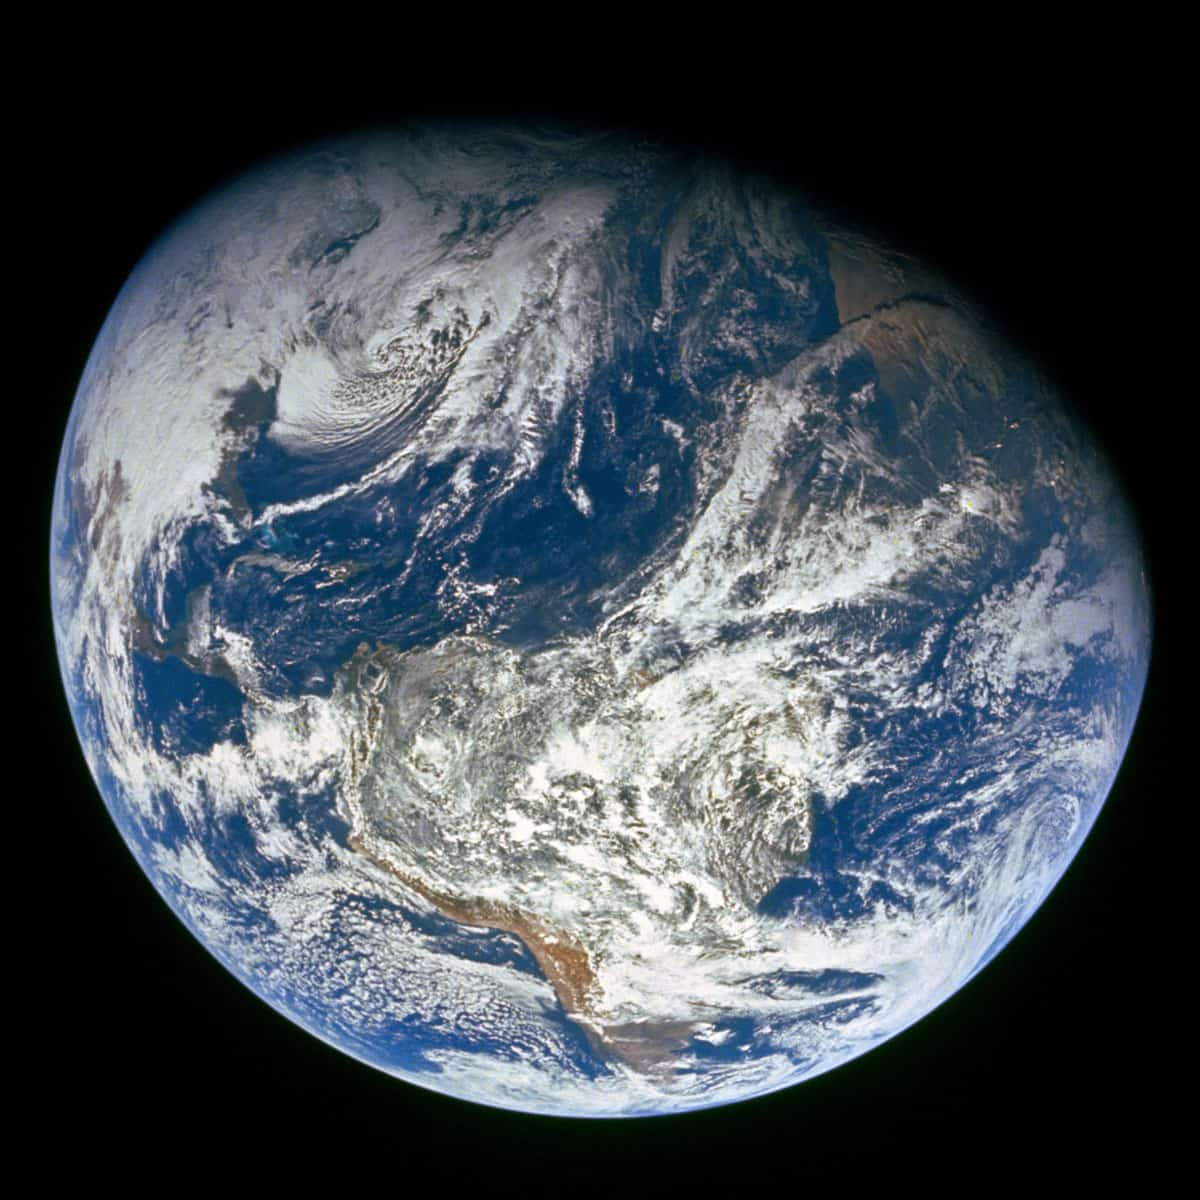 Photo of the Earth taken from space in 1968 showing the Western Hemisphere.